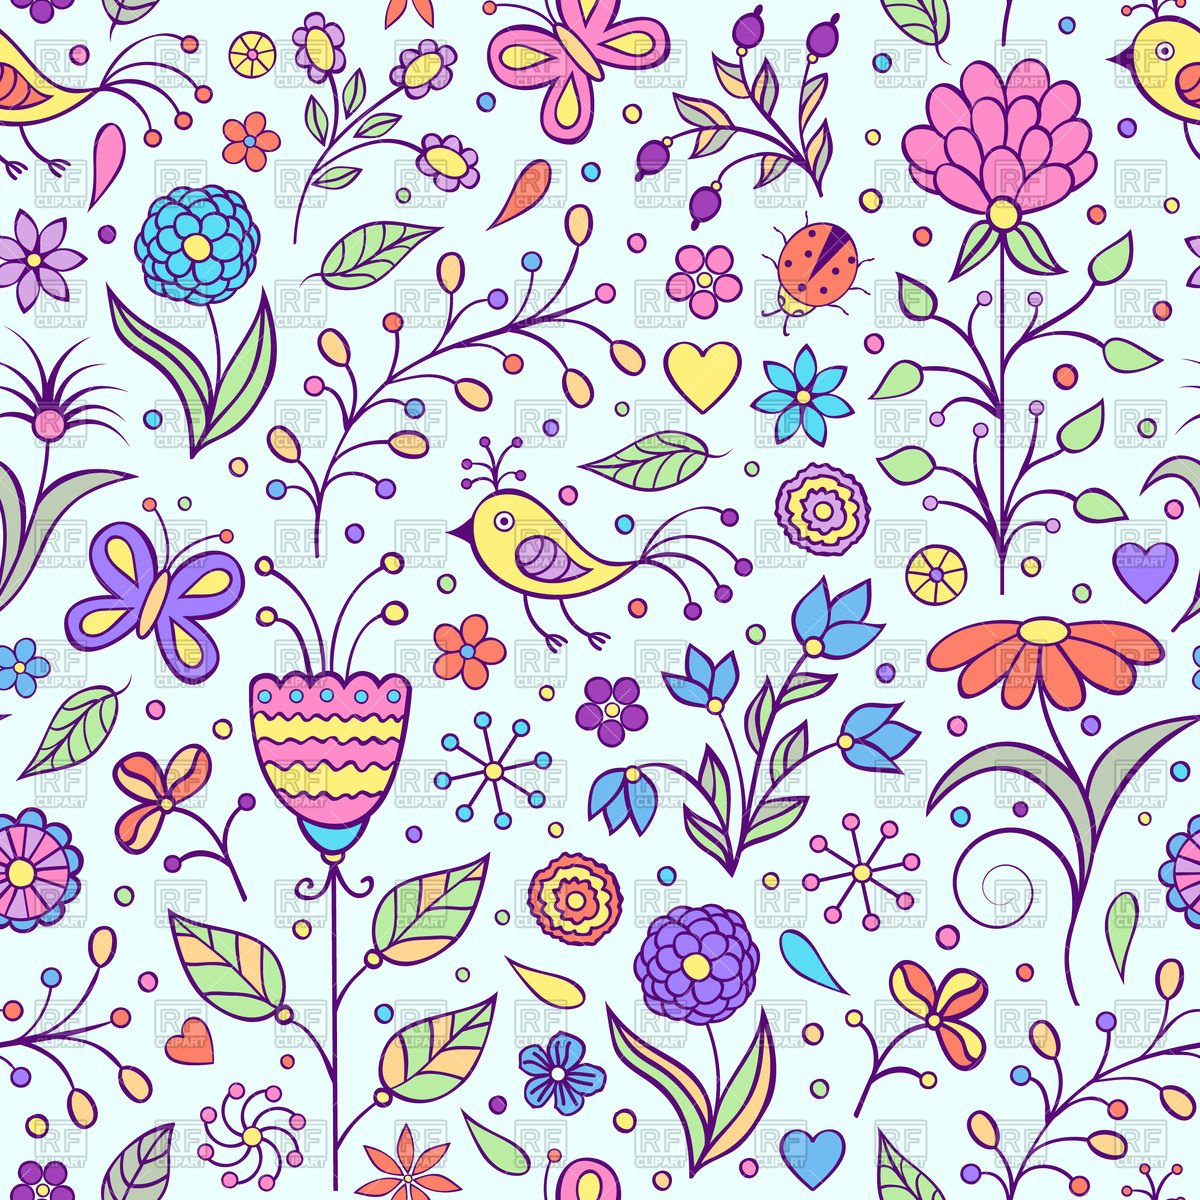 Doodle background wallpapersafari - Doodle desktop wallpaper ...